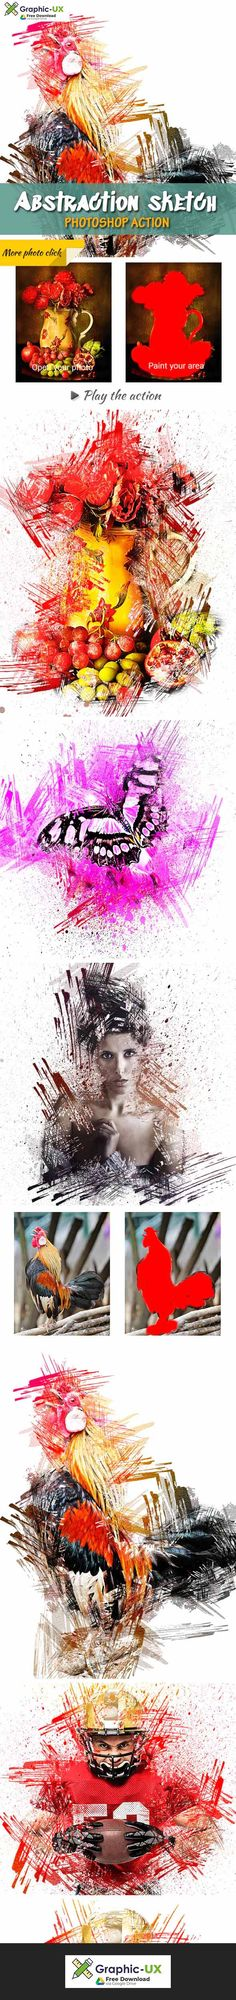 Mixed Media Photoshop Action By Sevenstyles On Rabota V Fotoshope